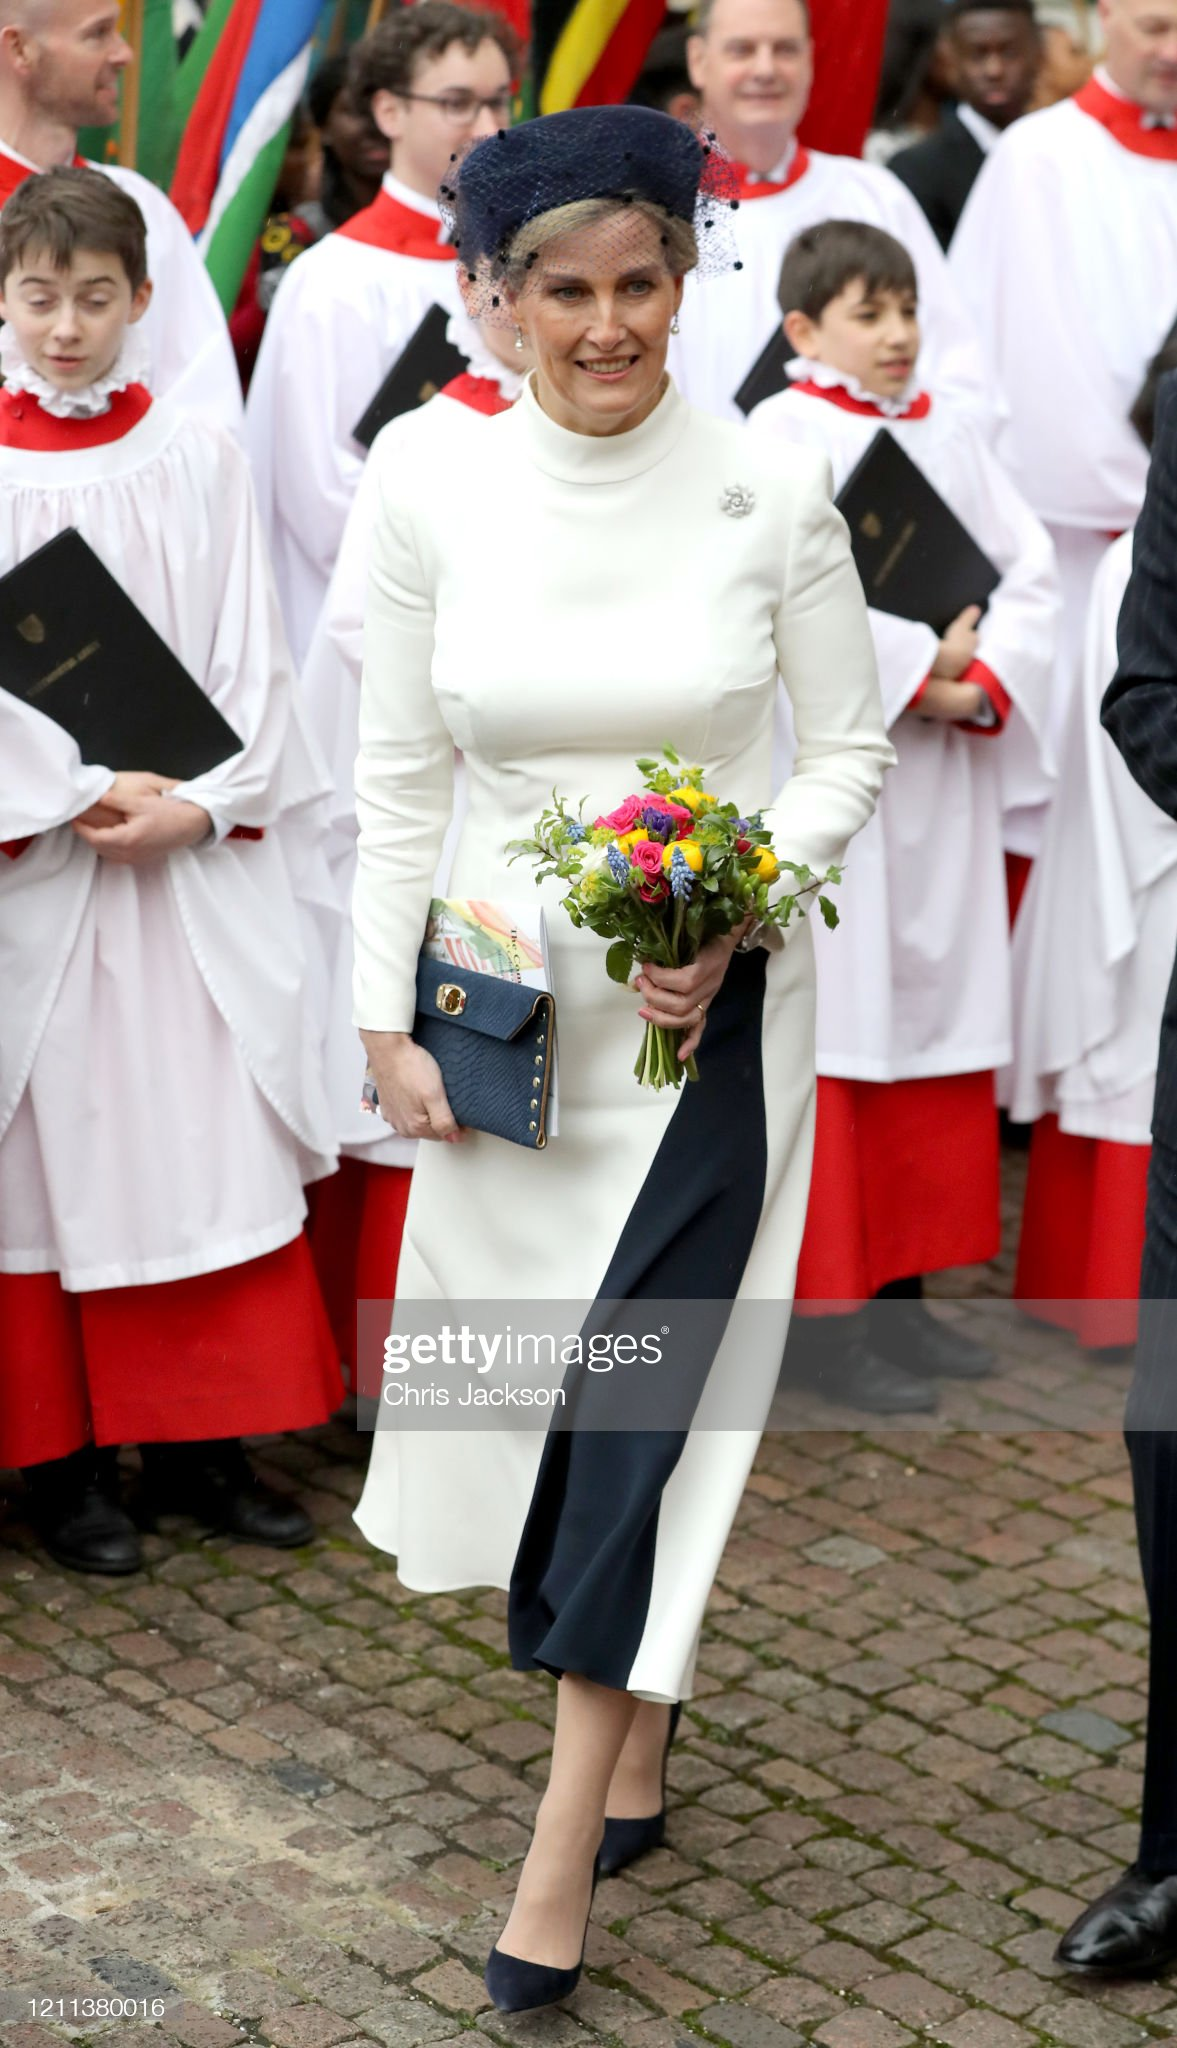 https://media.gettyimages.com/photos/sophie-countess-of-wessex-departs-the-commonwealth-day-service-2020-picture-id1211380016?s=2048x2048